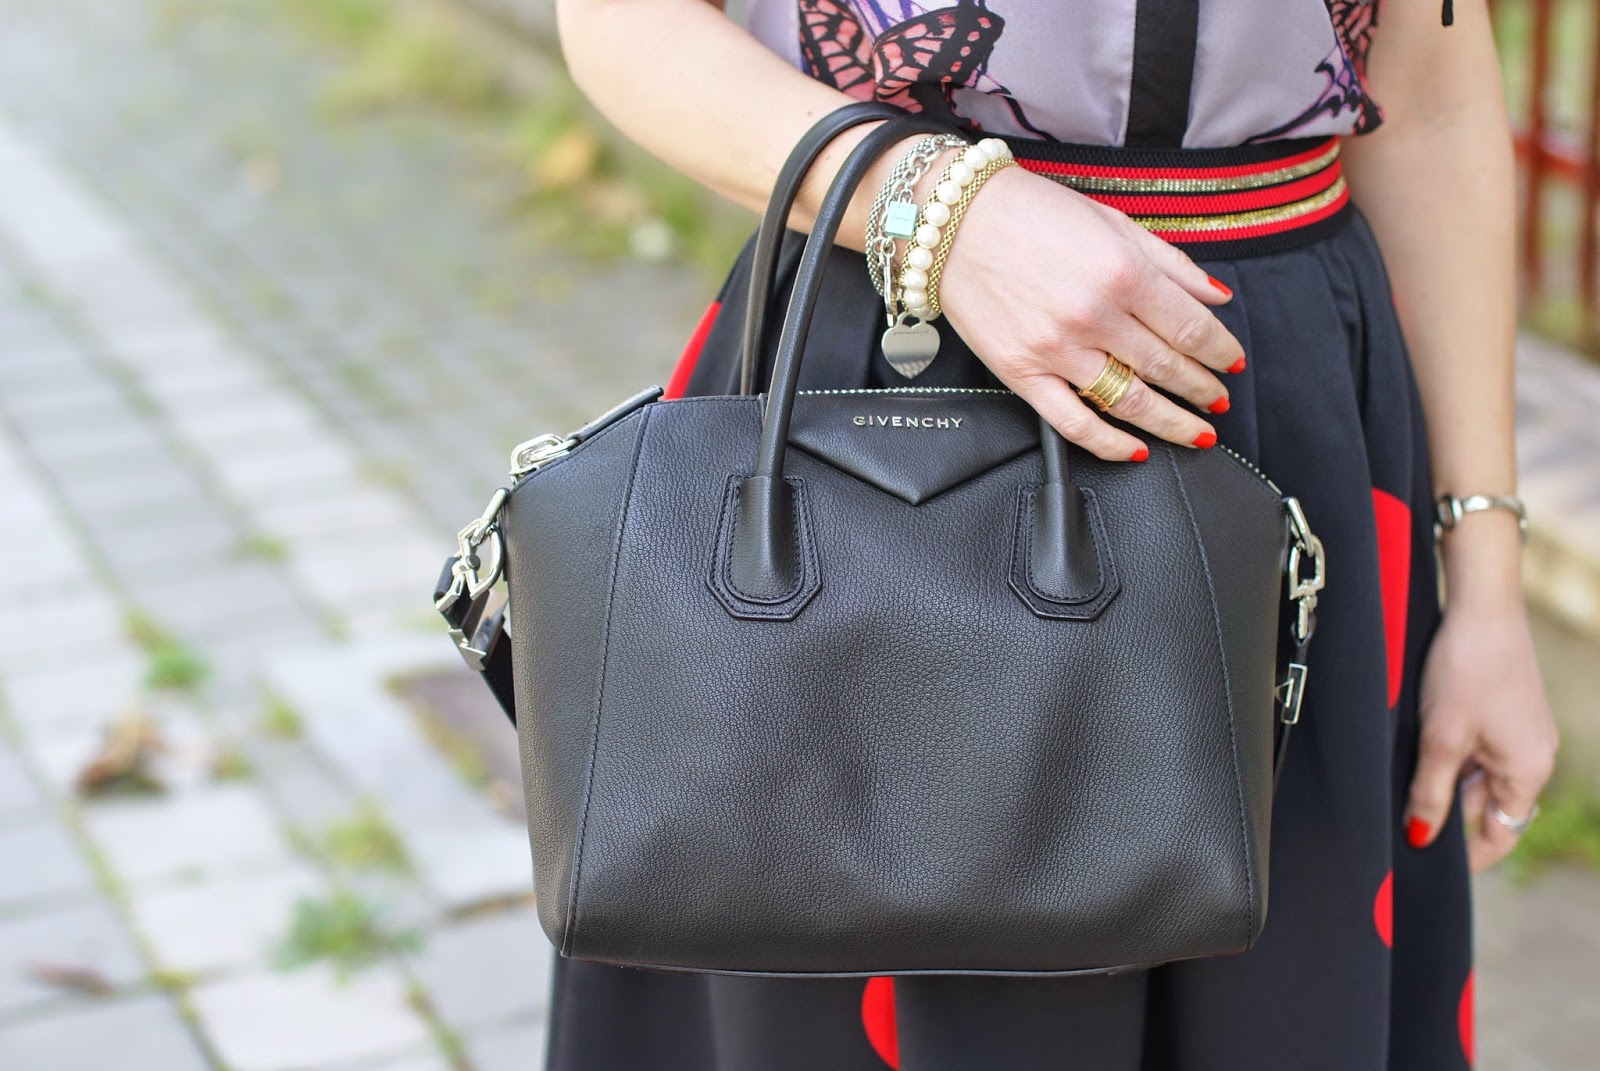 Givenchy Antigona small bag, Fashion and Cookies fashion blog, fashion blogger style